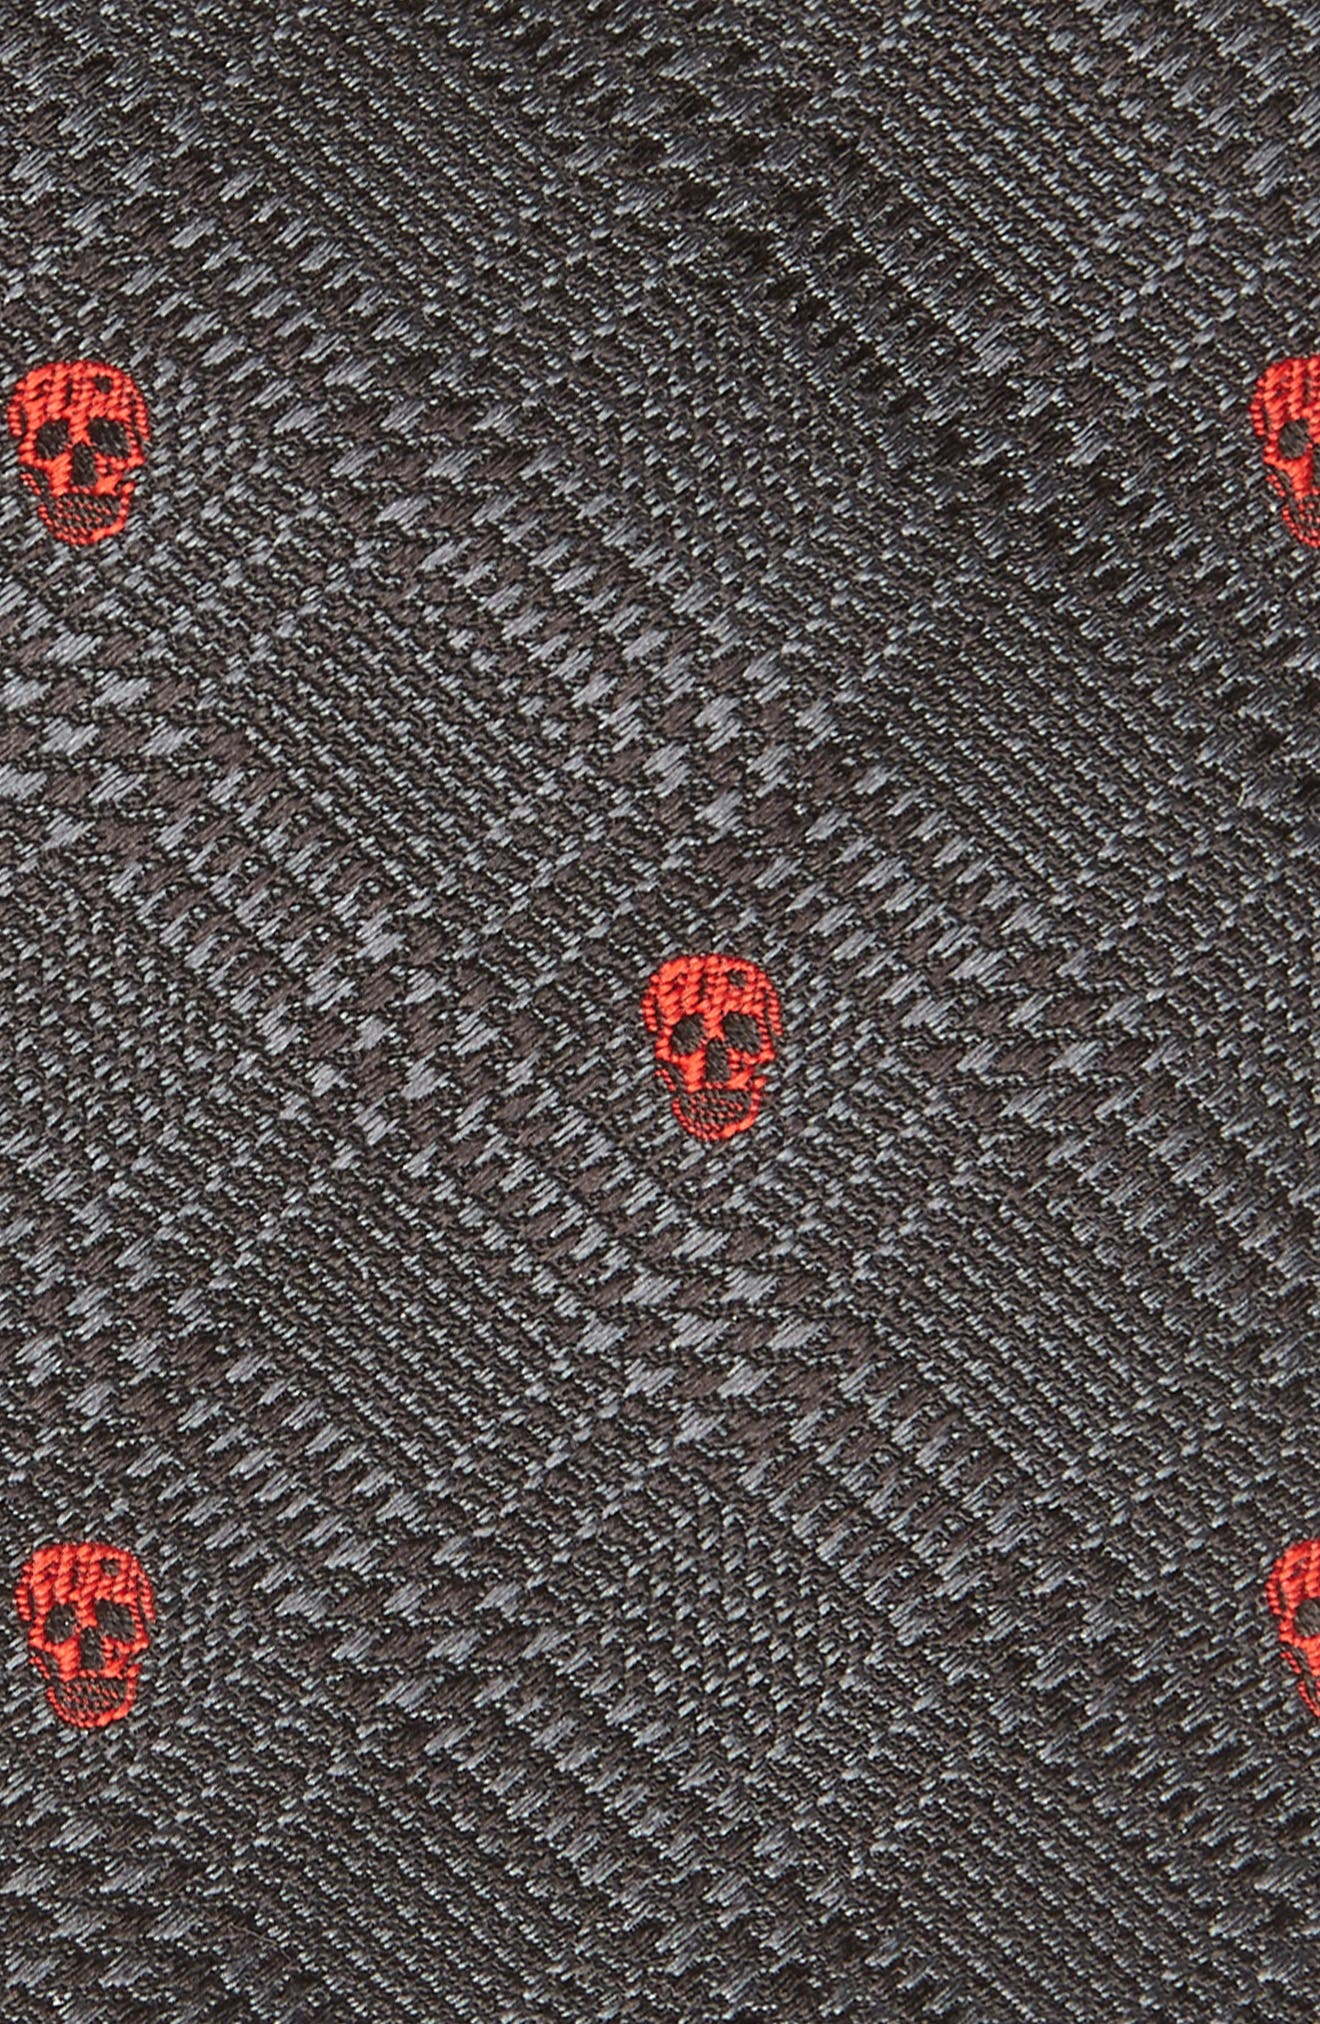 ALEXANDER MCQUEEN, Woven Silk Tie, Alternate thumbnail 2, color, BLACK AND RED